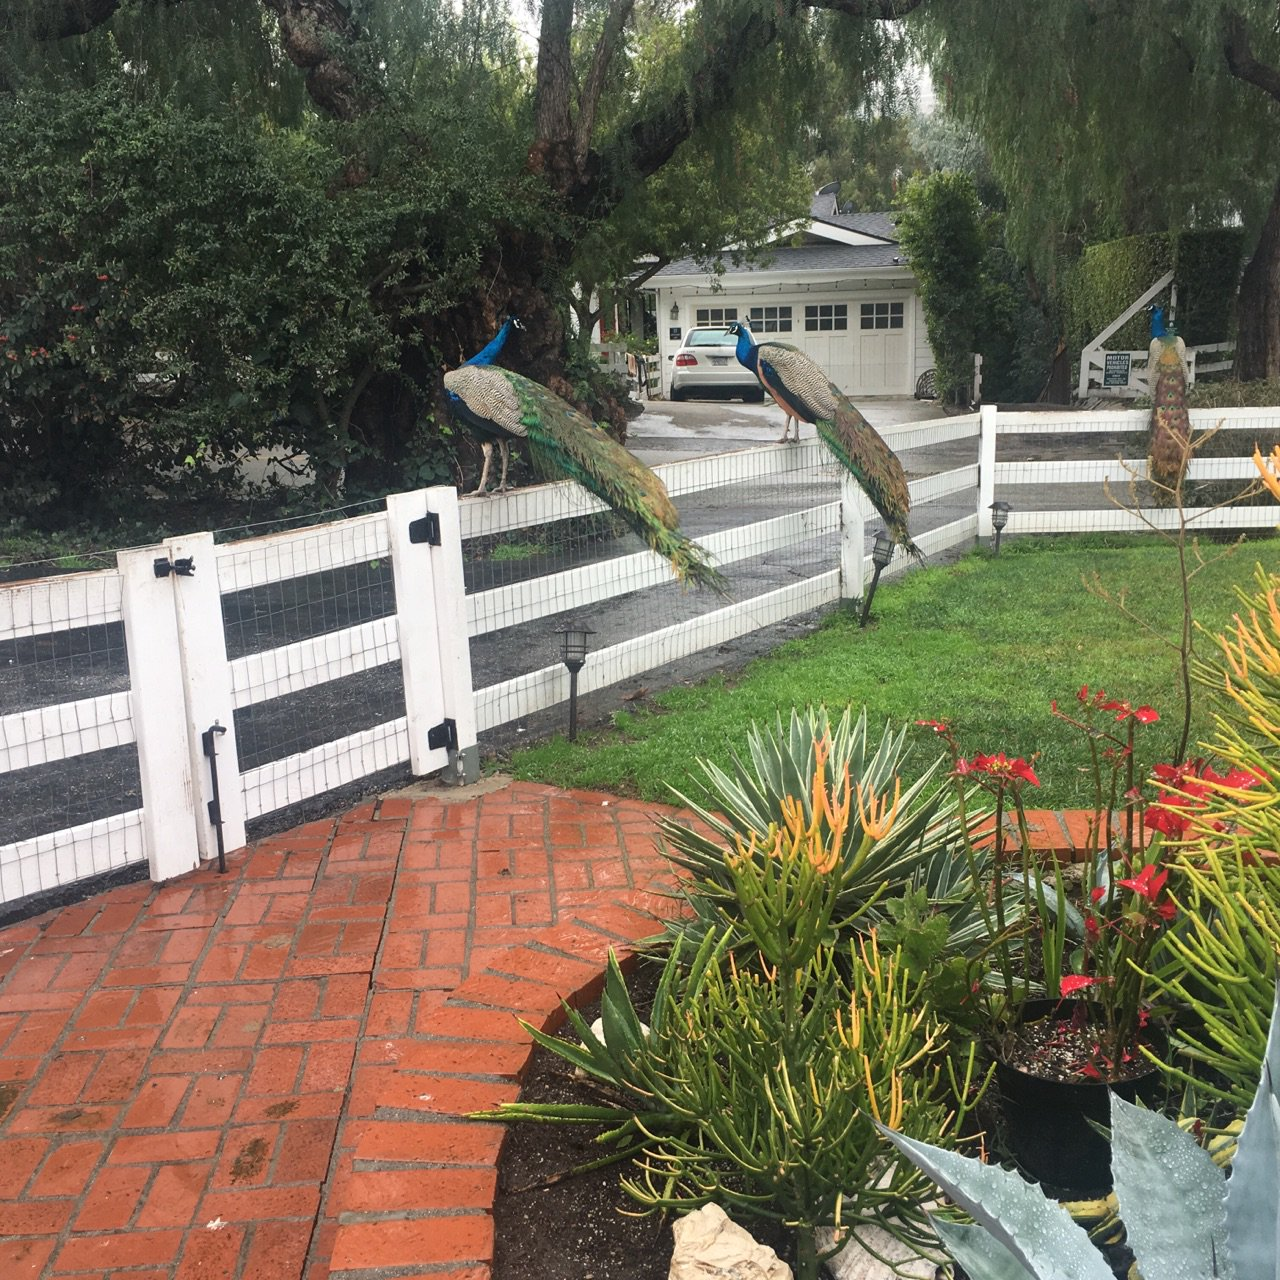 The #LARain continues tonight! What are you seeing near you? Here's a photo a listener sent us (with peacocks!) from Rolling Hills Estates. https://t.co/zYdItJTHsM